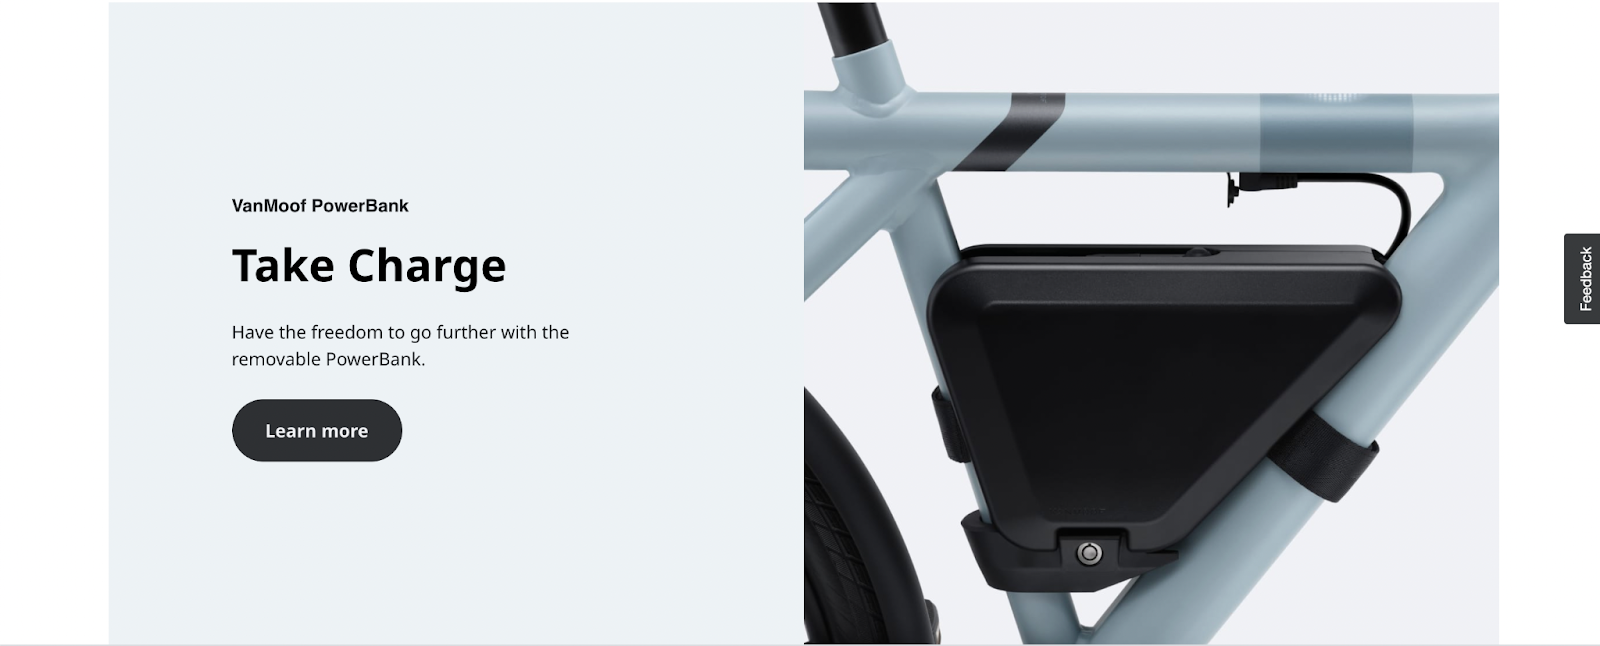 An e-bike with a removable power bank. Makes sense, I think? Learn more as a CTA works here.